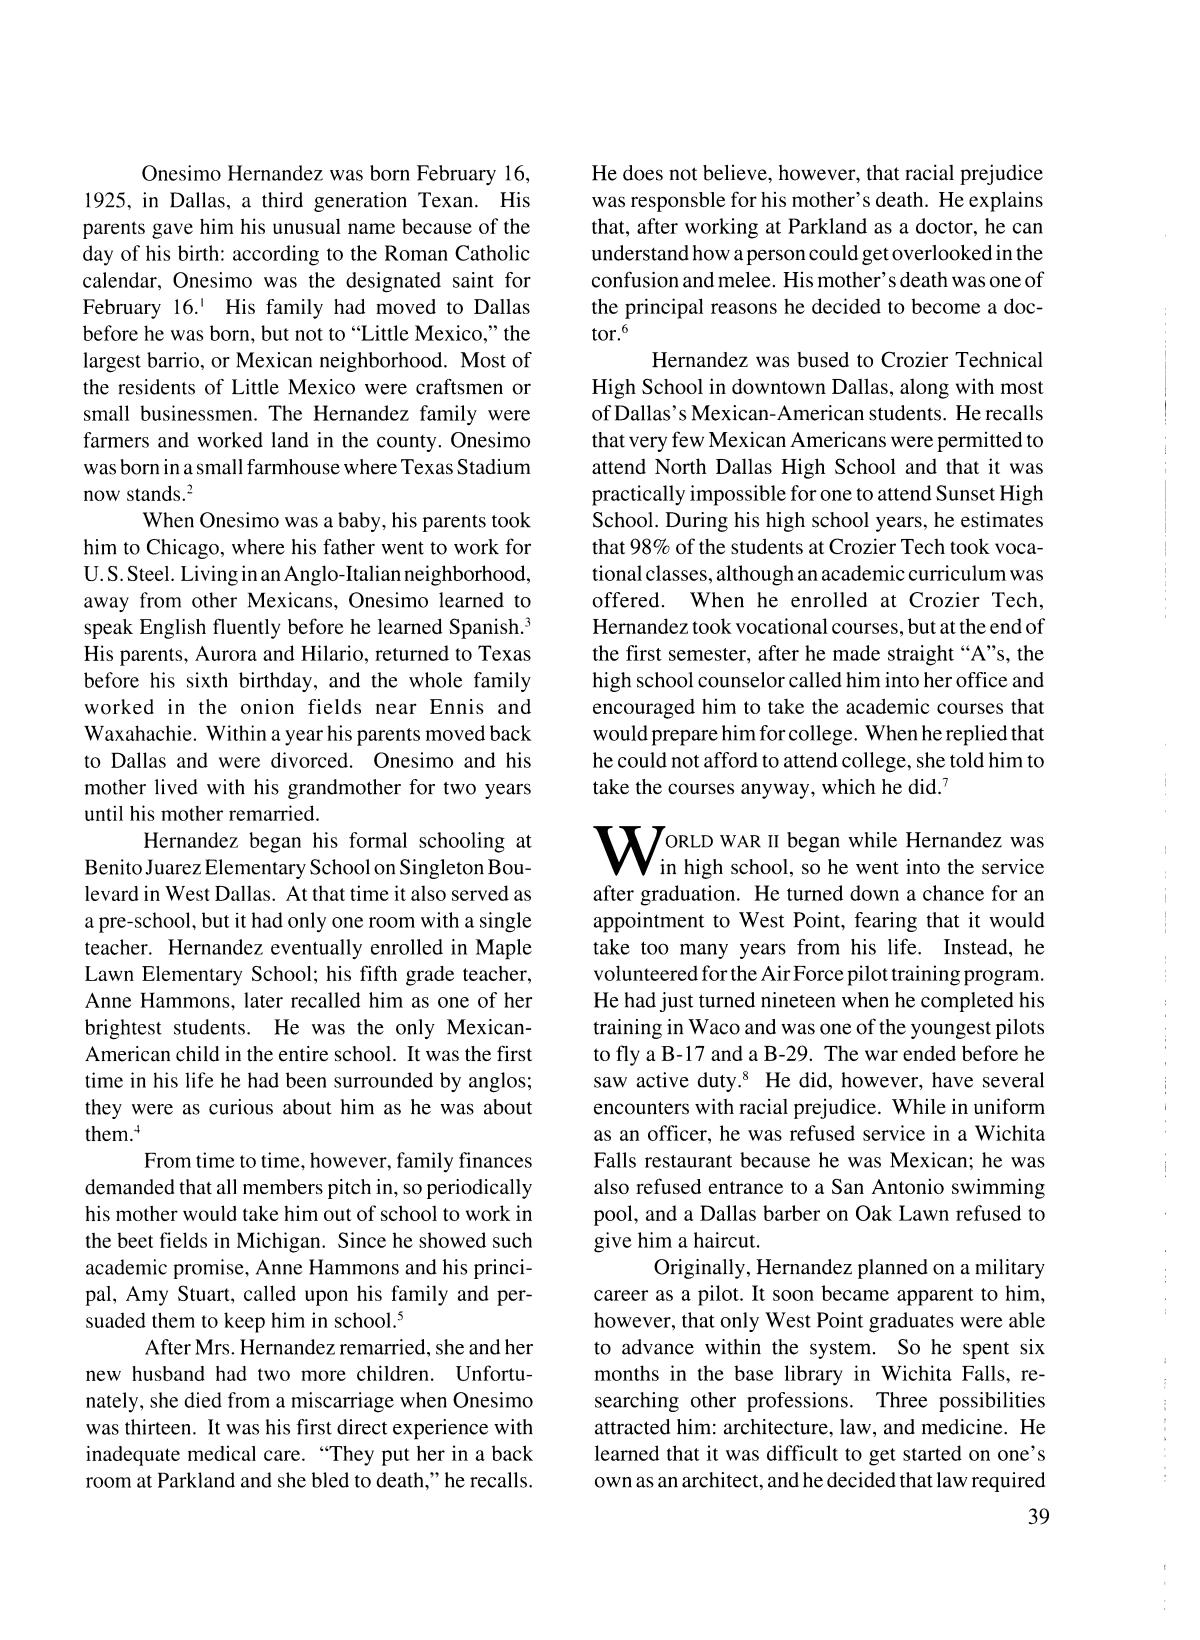 legacies a history journal for dallas and north central texas legacies a history journal for dallas and north central texas volume 05 number 01 spring 1993 page 39 the portal to texas history